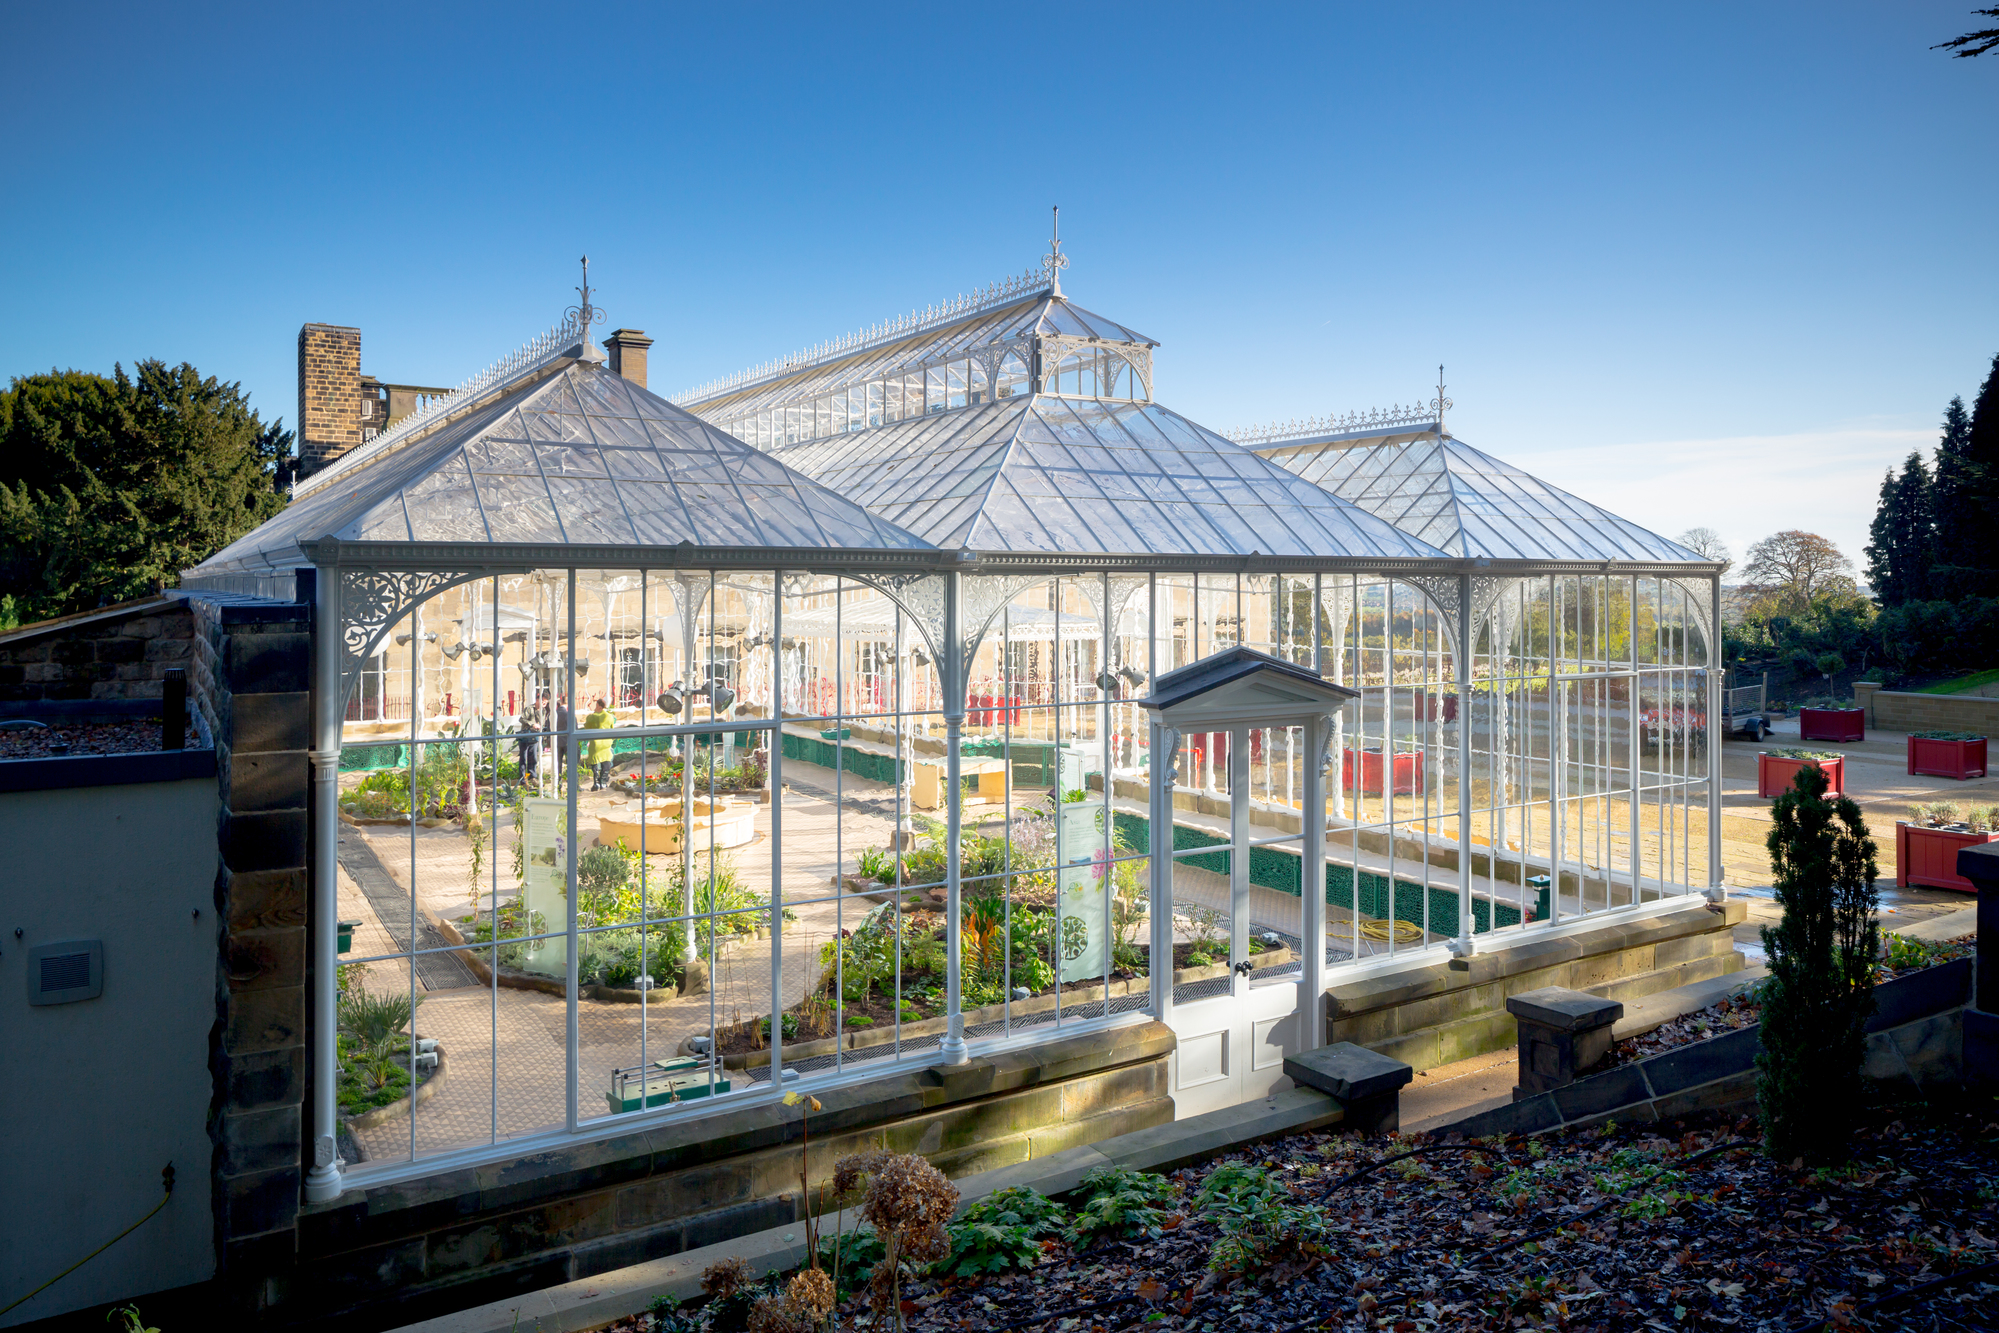 Wentworth Castle Glasshouse